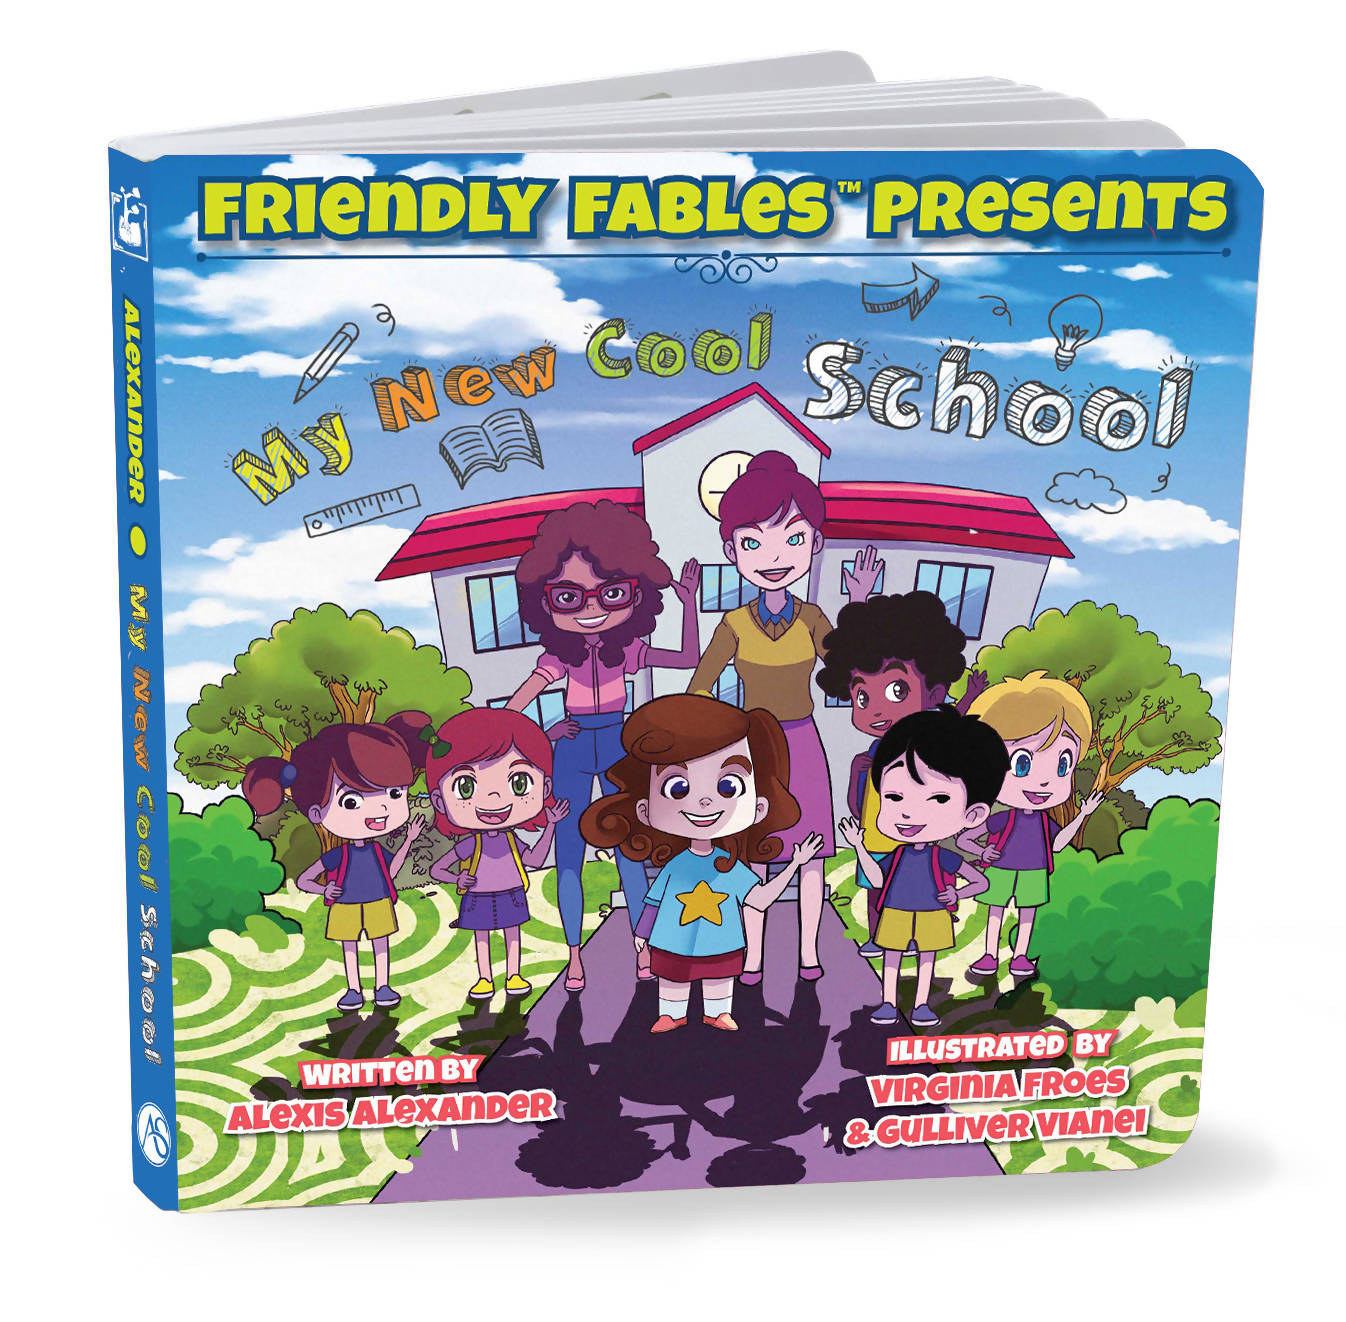 Friendly Fables | My Cool New School | 088 - 0105